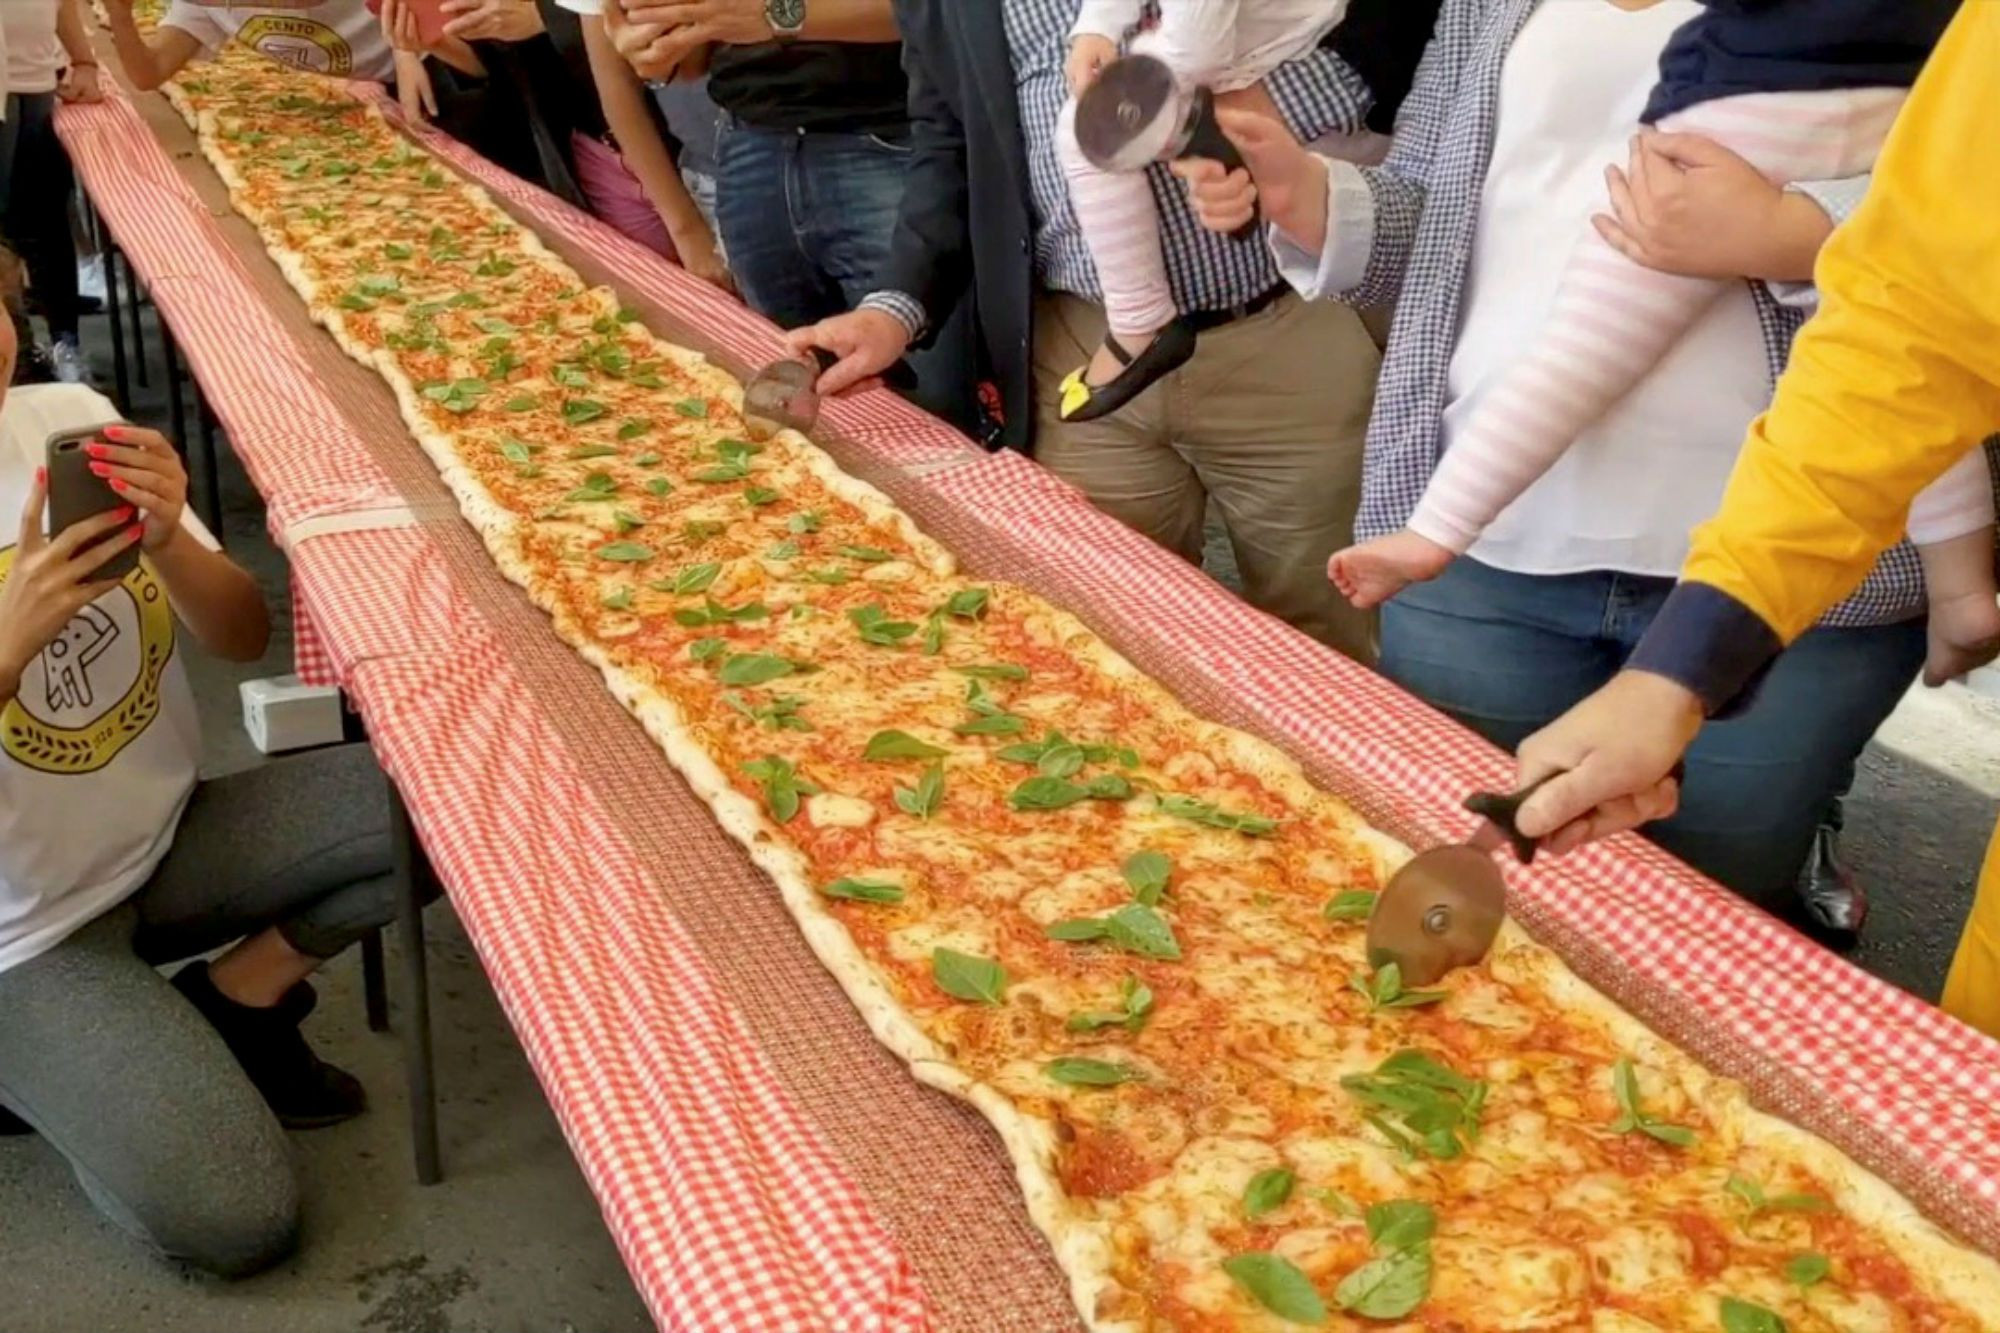 The 300ft Pizza That Helped Australia